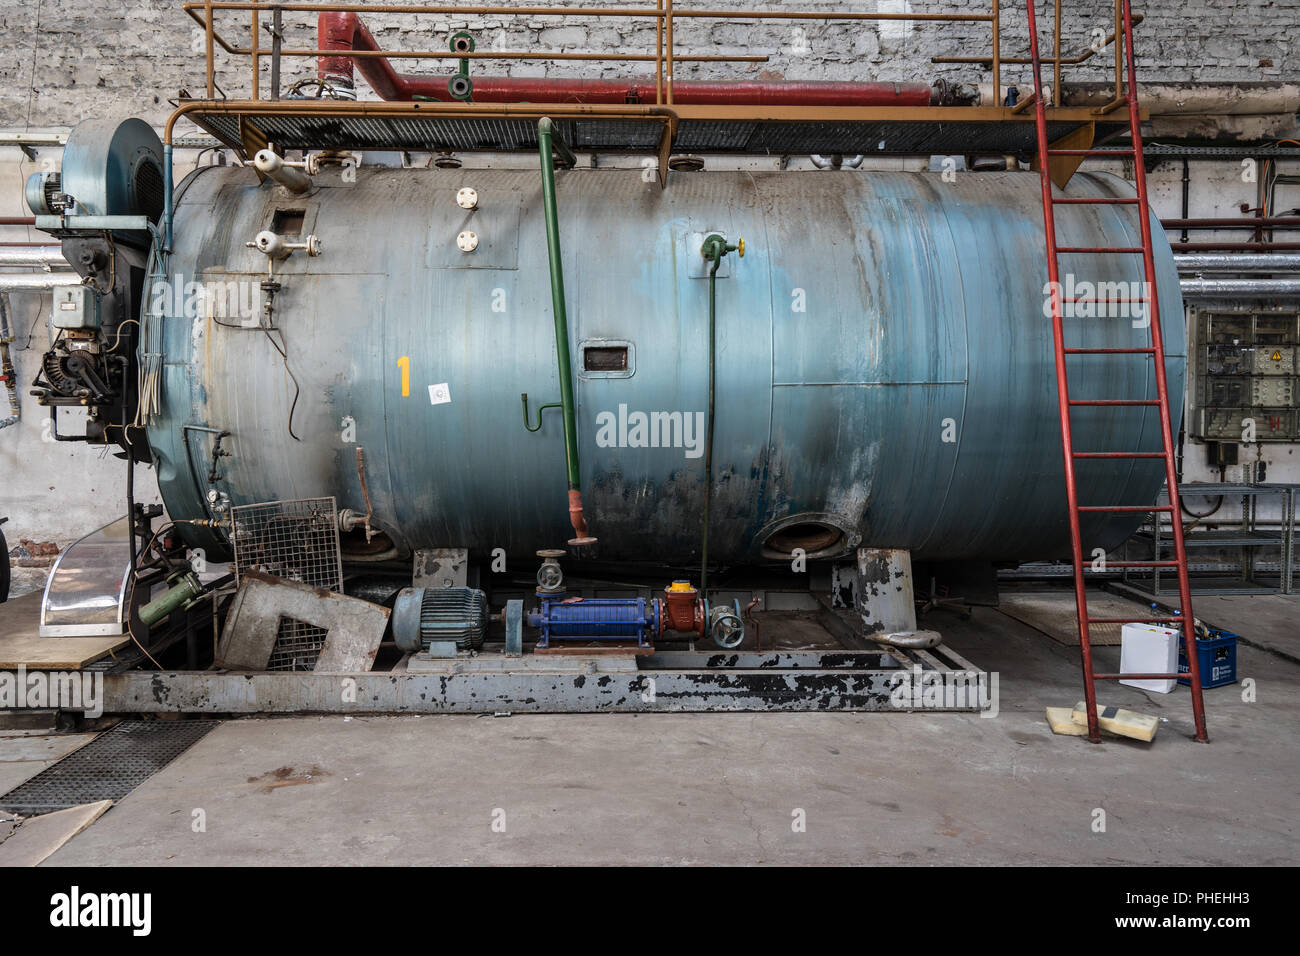 Steam Boiler Stock Photos & Steam Boiler Stock Images - Alamy